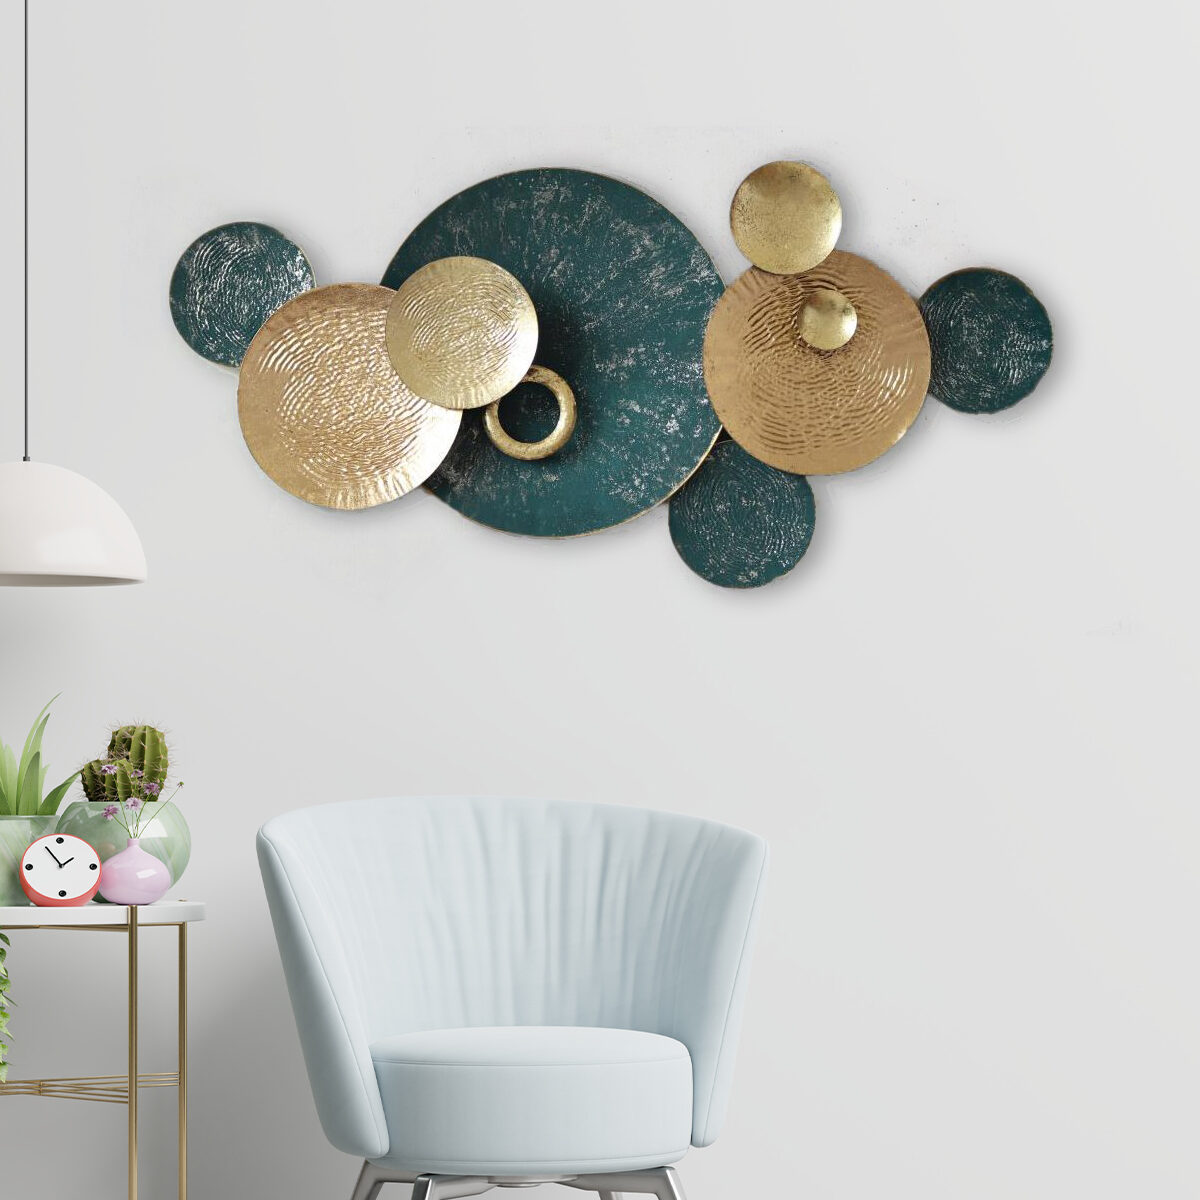 The Green Asteroid Metallic Wall Art Panel